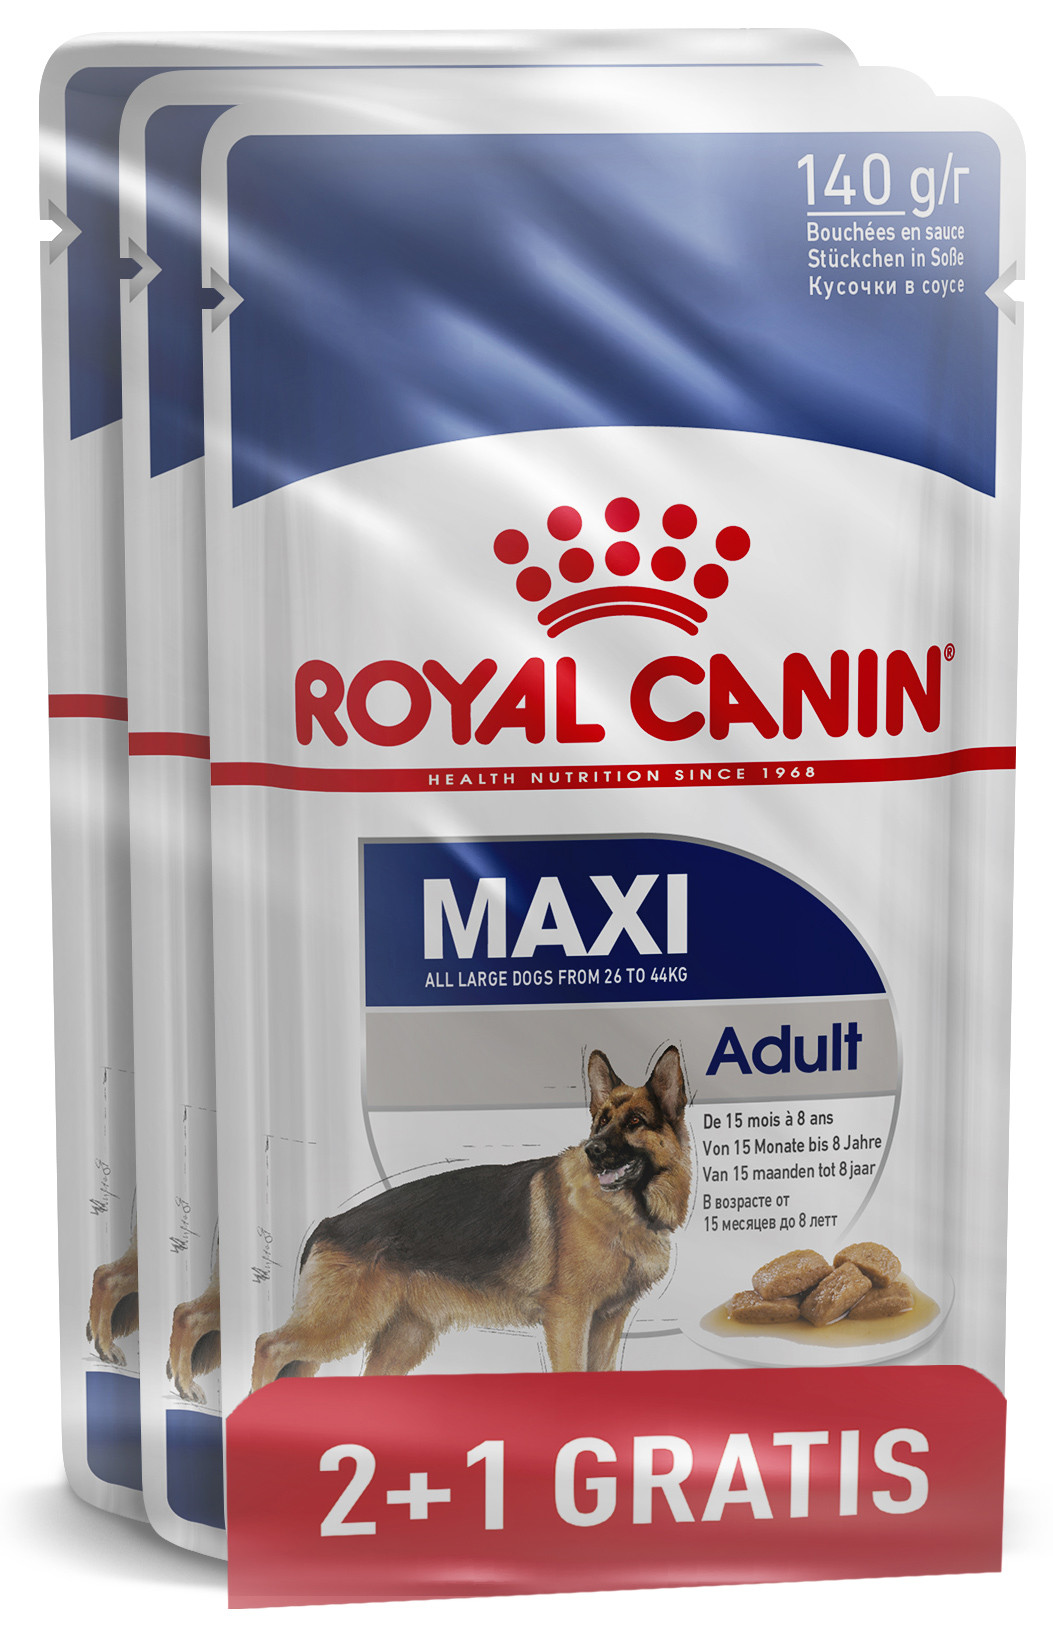 Royal Canin Maxi Adult 140 gr 2+1